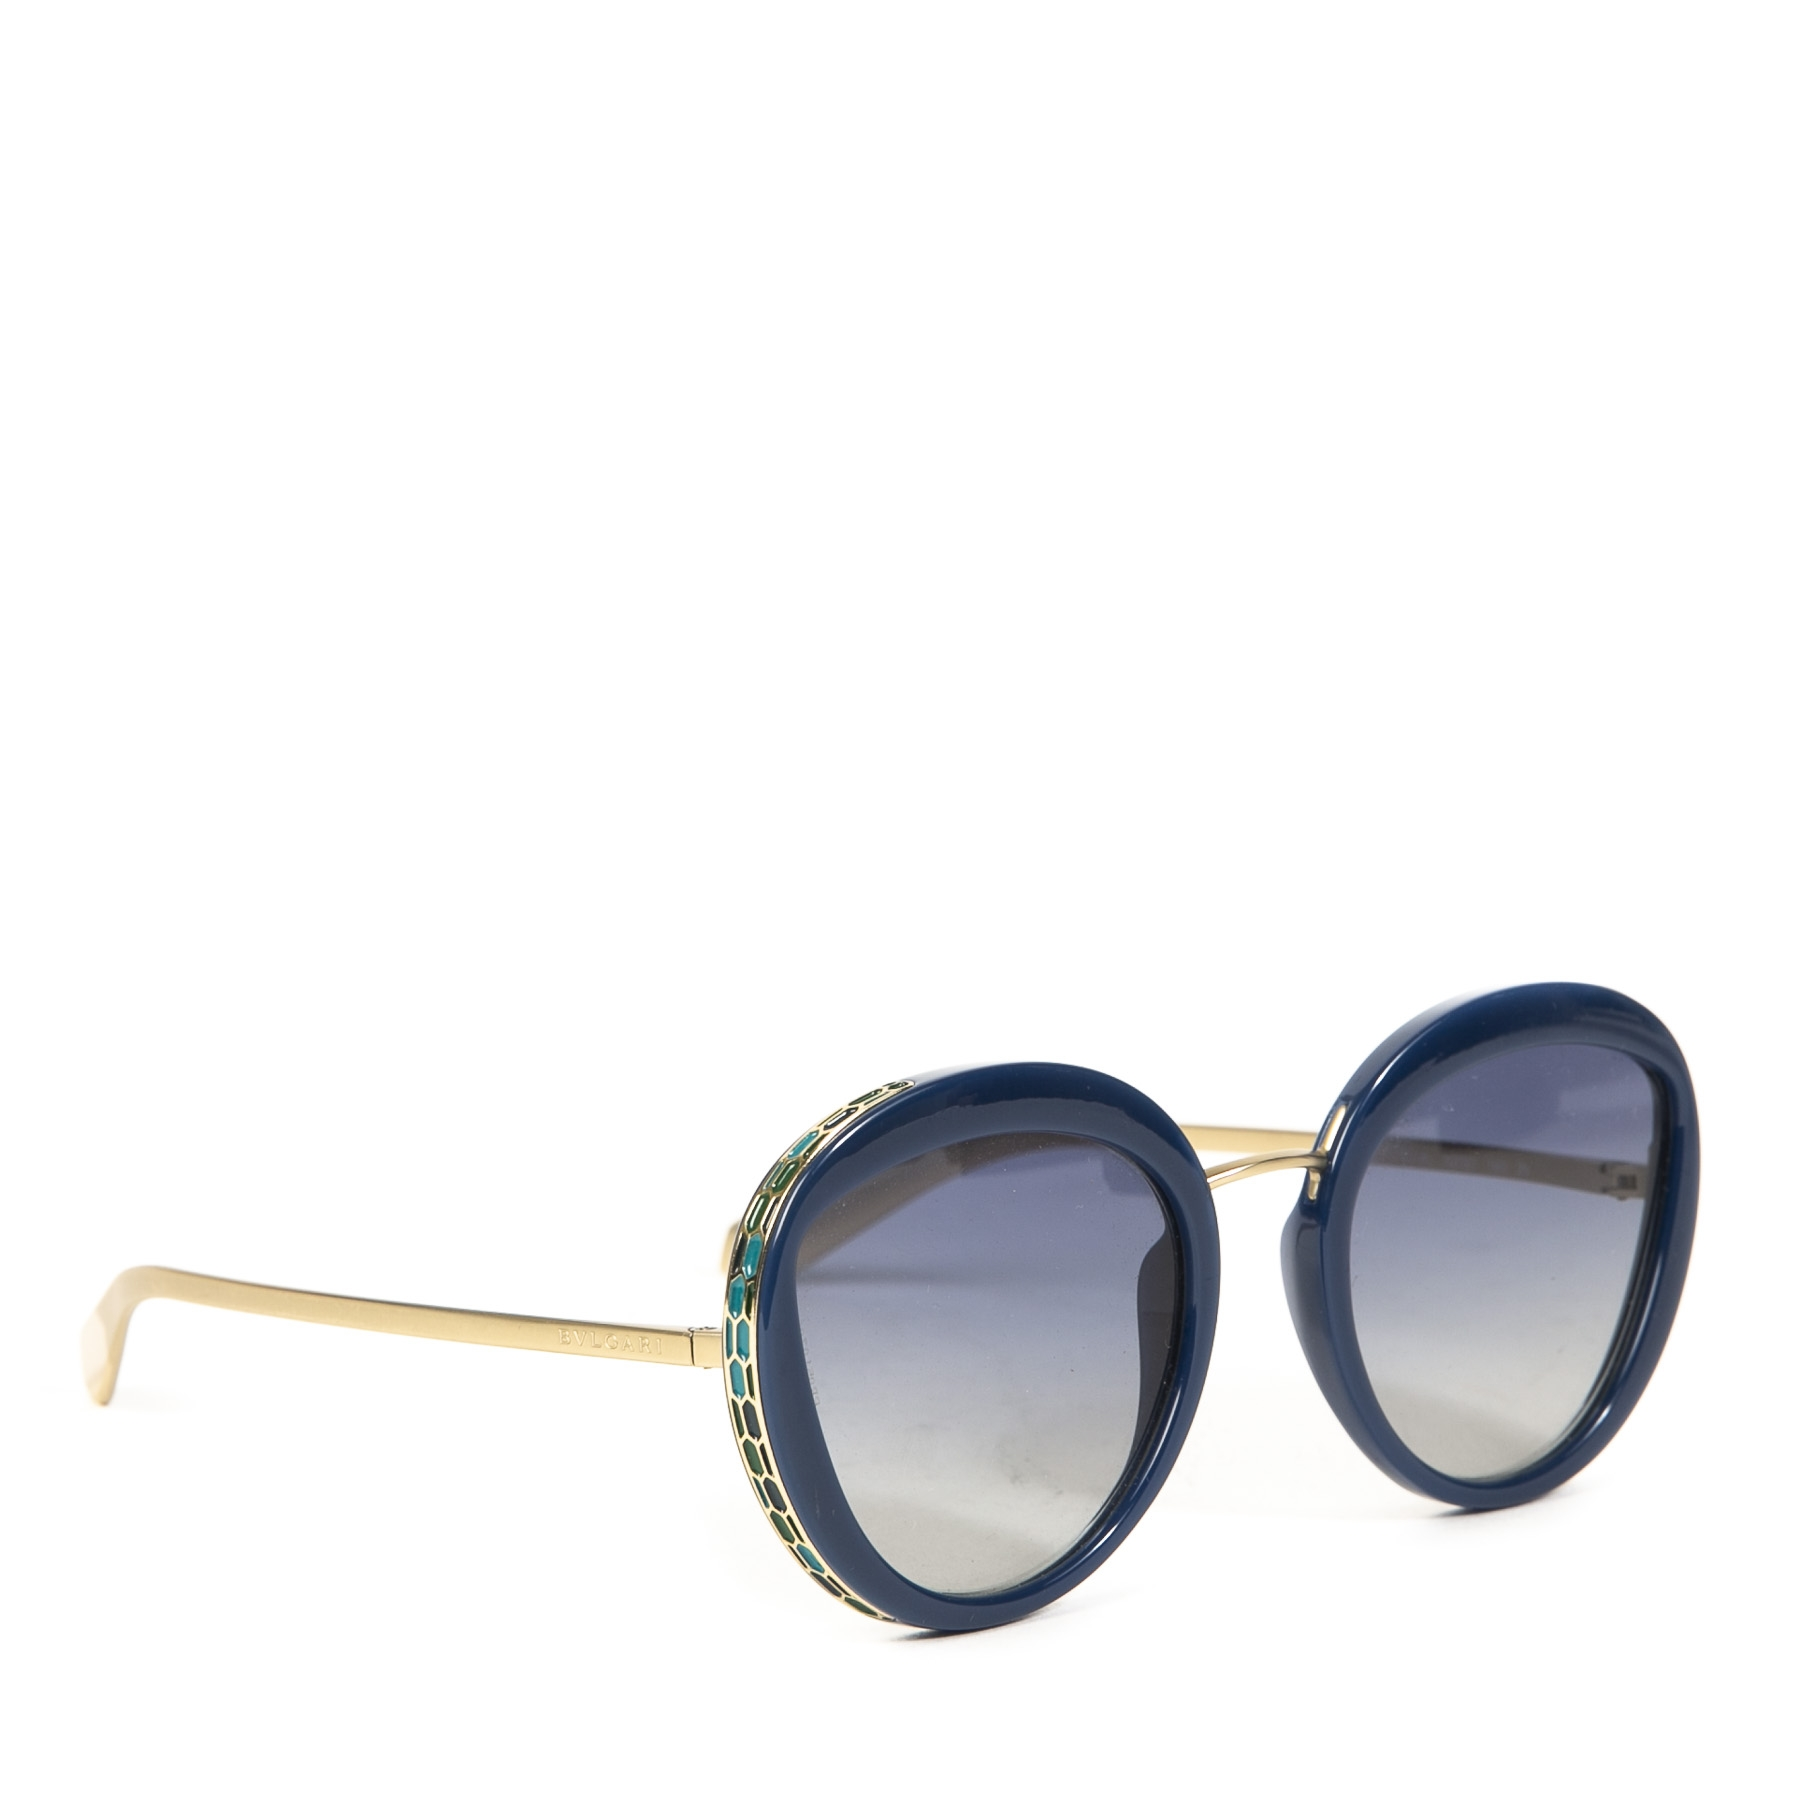 Bulgari Blue Round Sunglasses